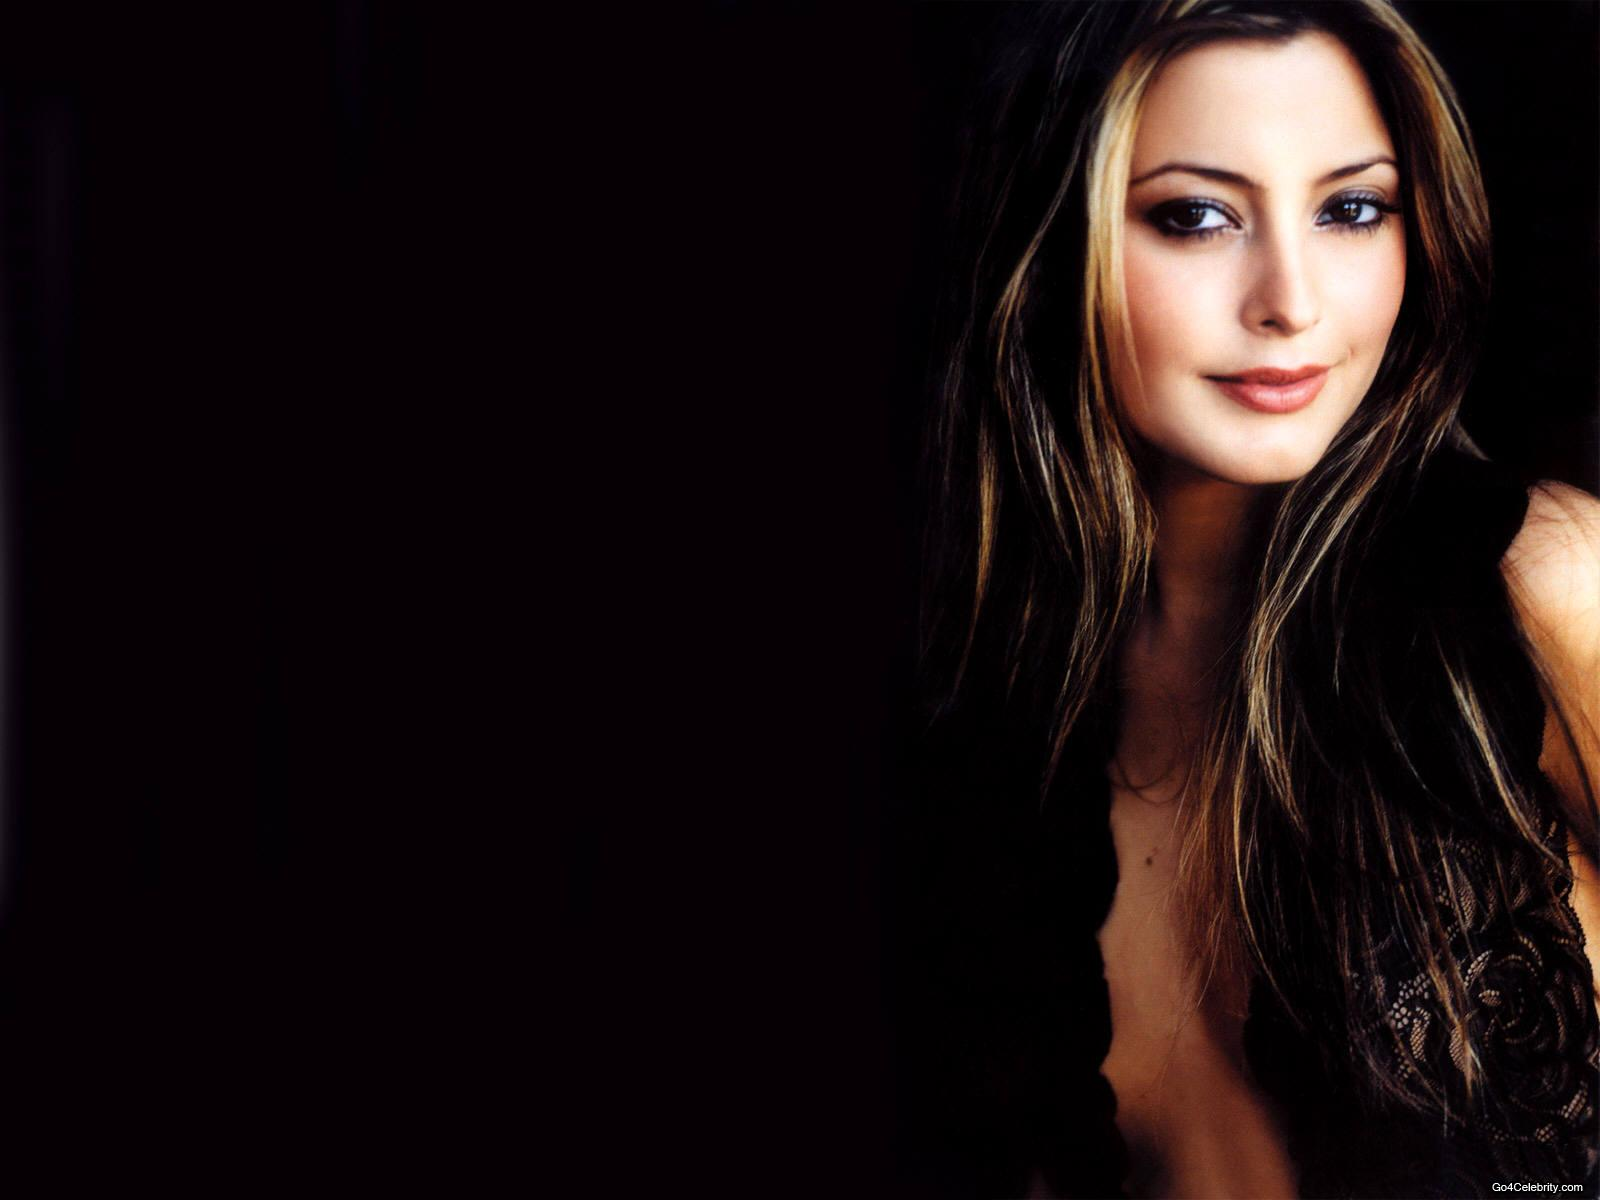 Download this Sexy Model Holly Valance Hot Wallpaper picture